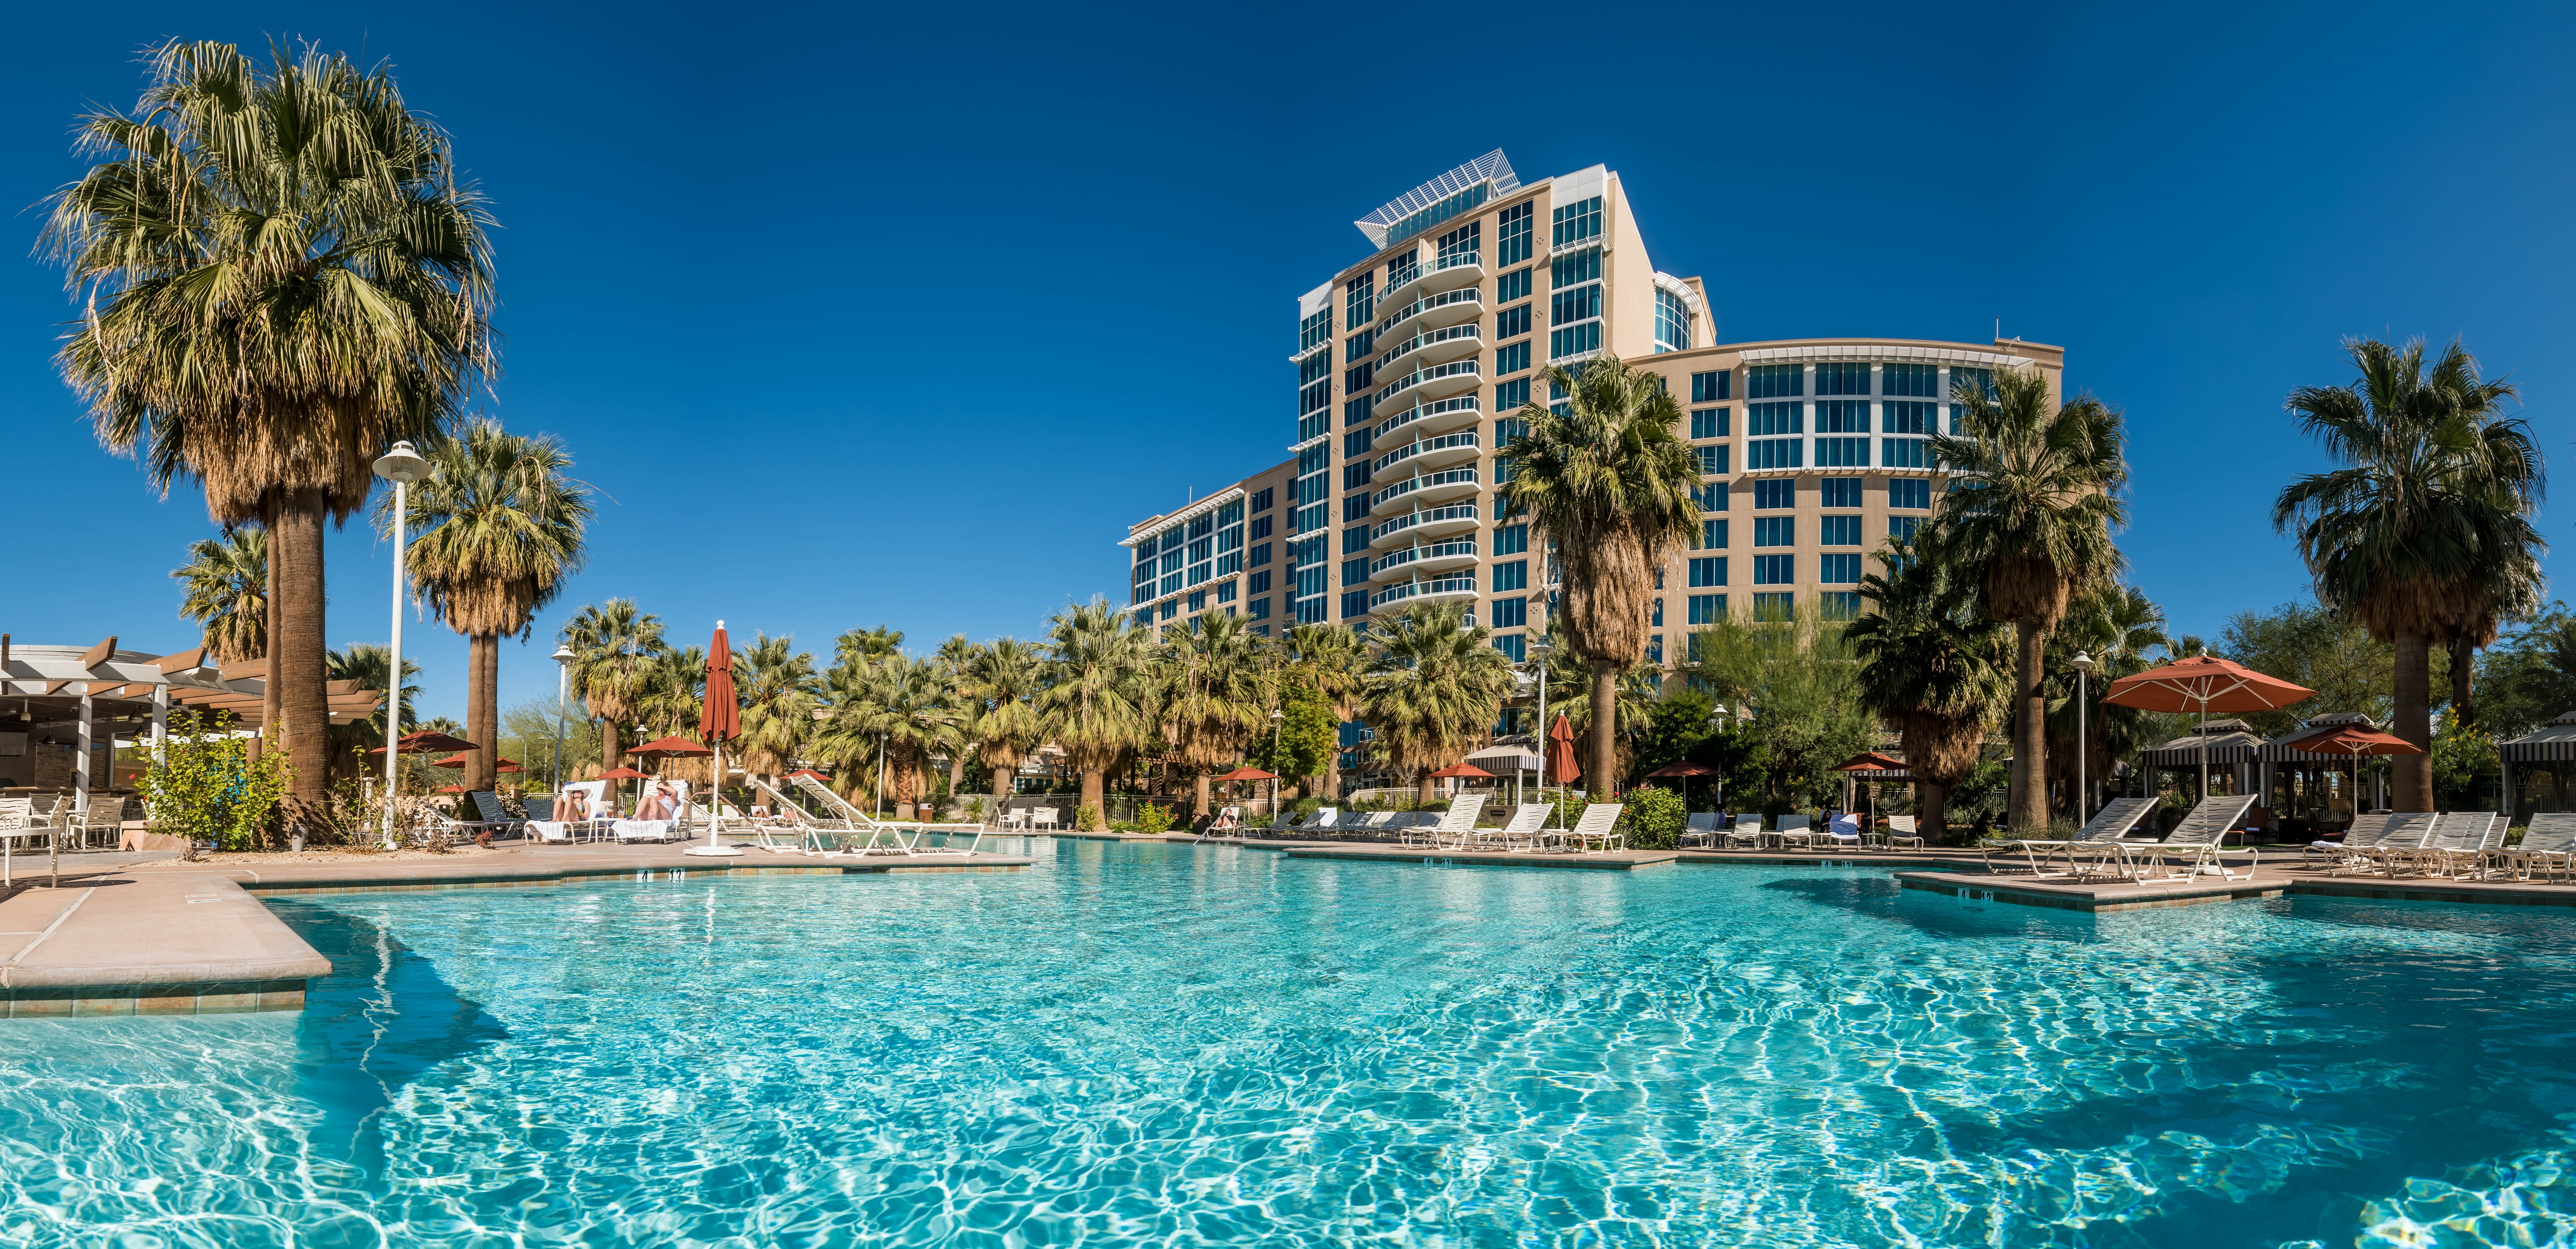 Hotels palm springs casino play free quick hit slot machines online